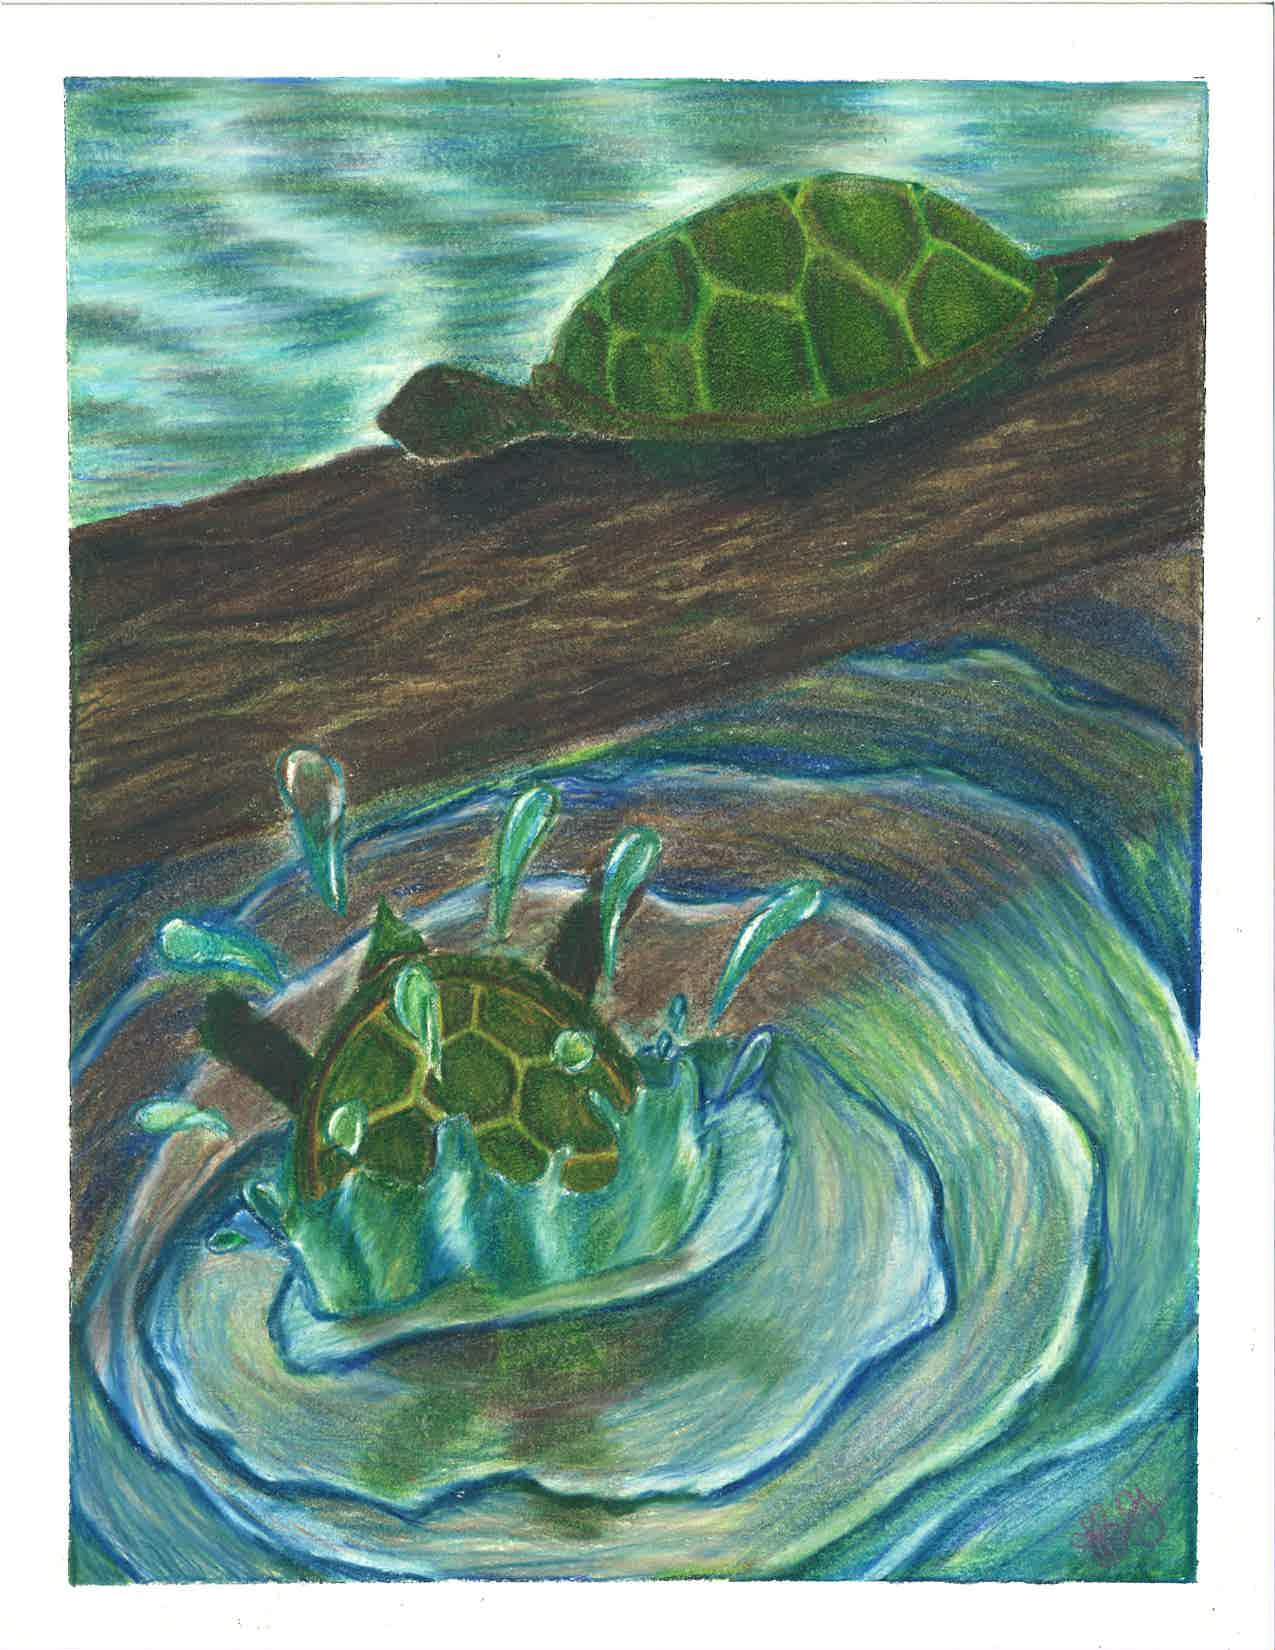 one turtle splashes into the water as a second turtle remains on a log